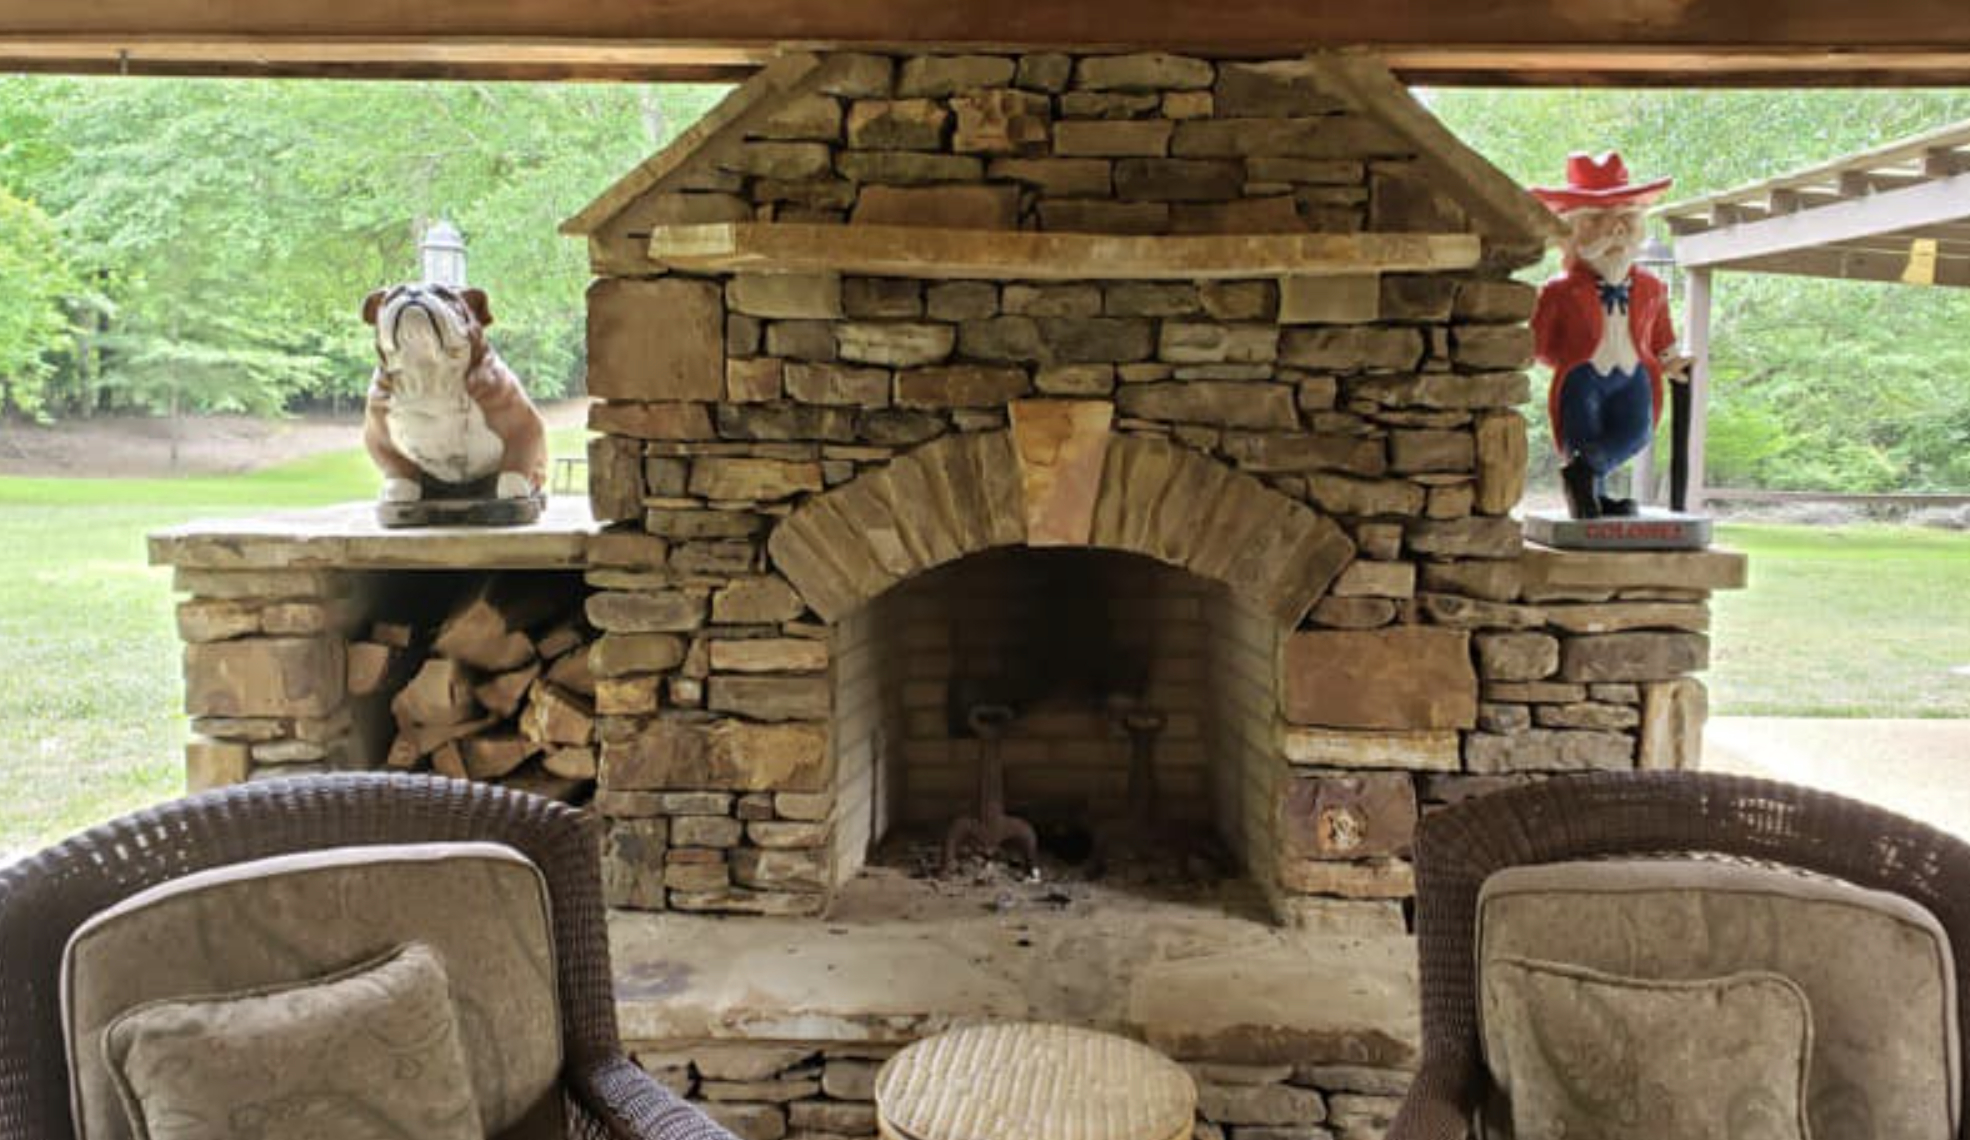 this image shows fireplace in Rancho Cucamonag, California